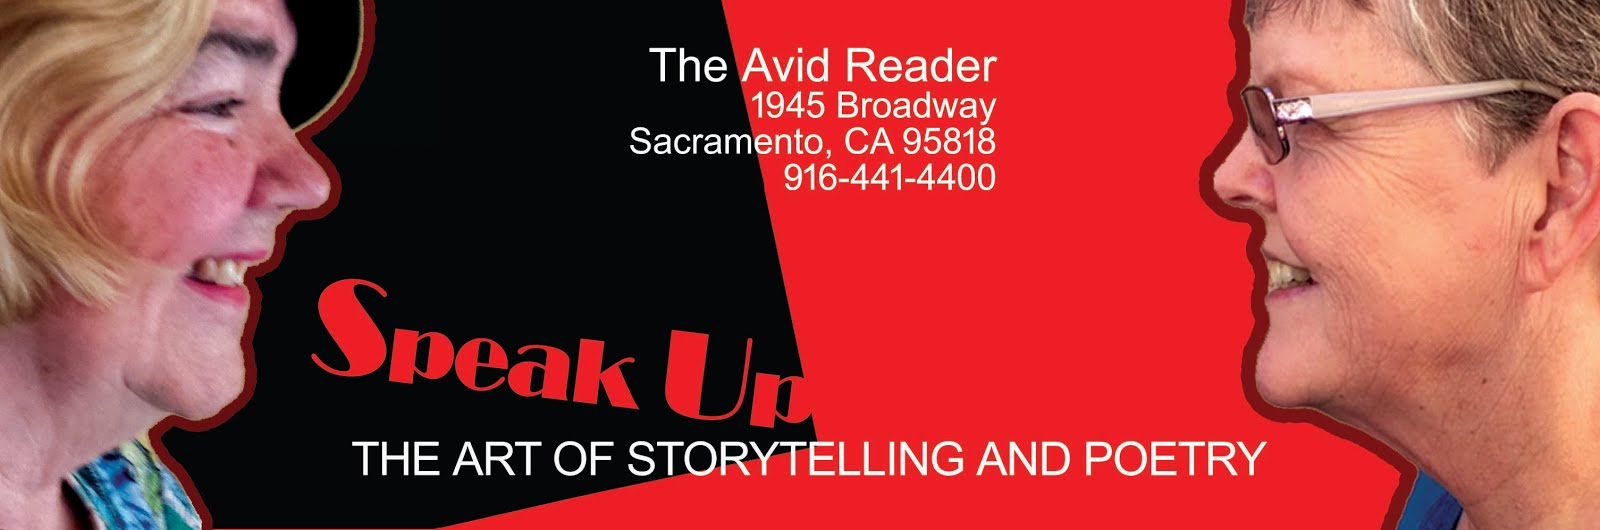 SPEAK UP in Sacramento Fri. (5/25)